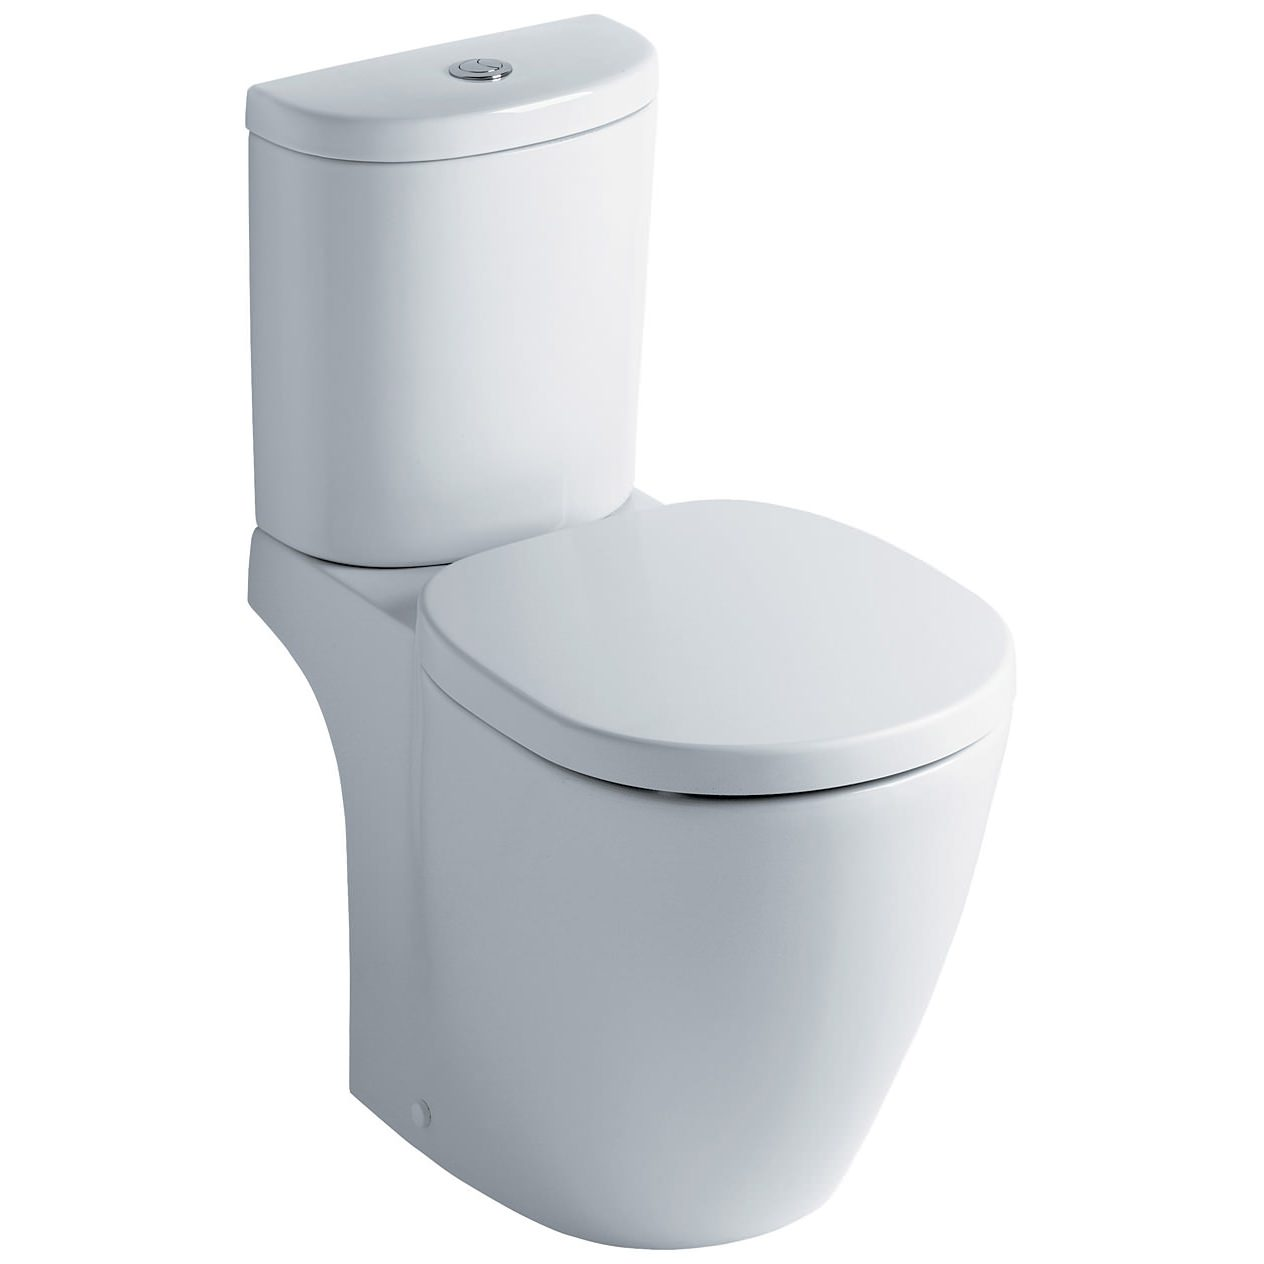 Gäste Wc Waschtisch Ideal Standard Ideal Standard Concept Close Coupled Wc Pan 665mm E7871